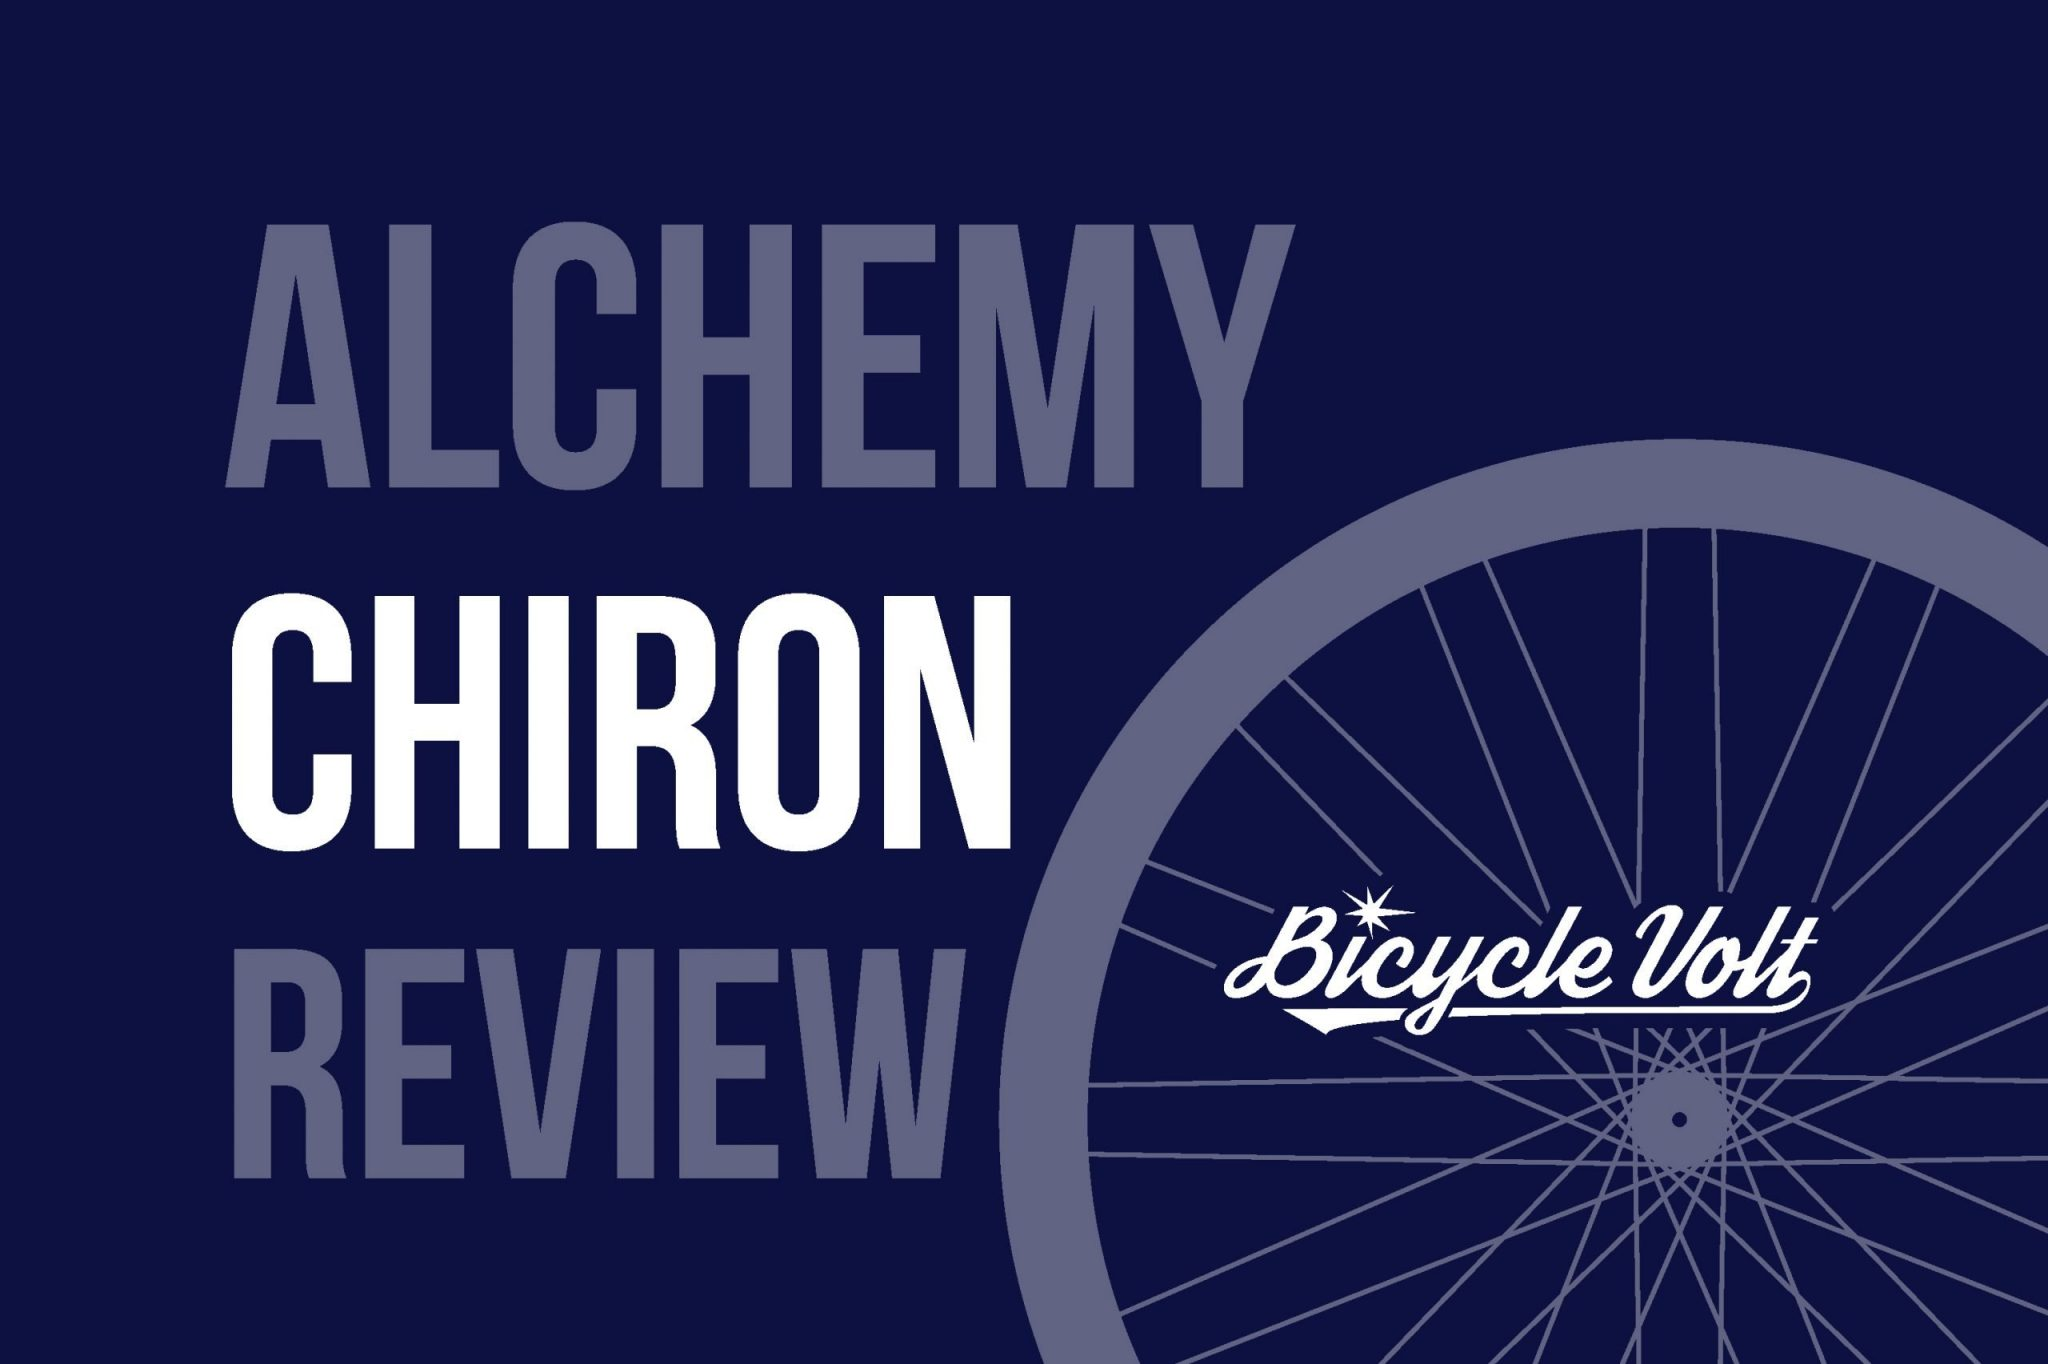 ALCHEMY CHIRON REVIEW